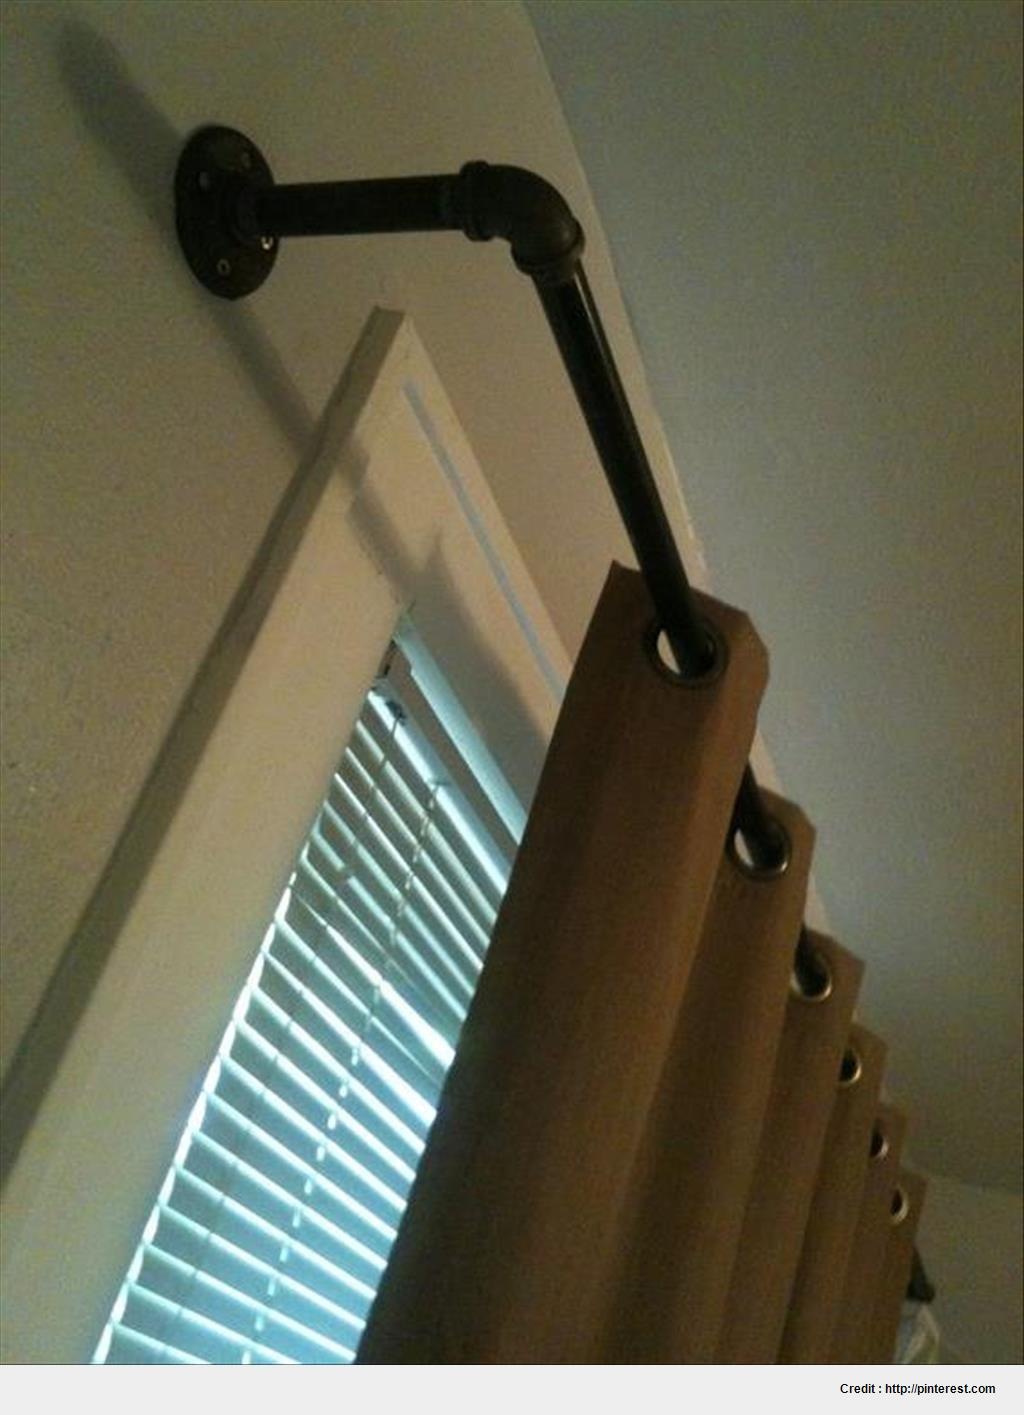 Best Black Iron Curtain Rod image